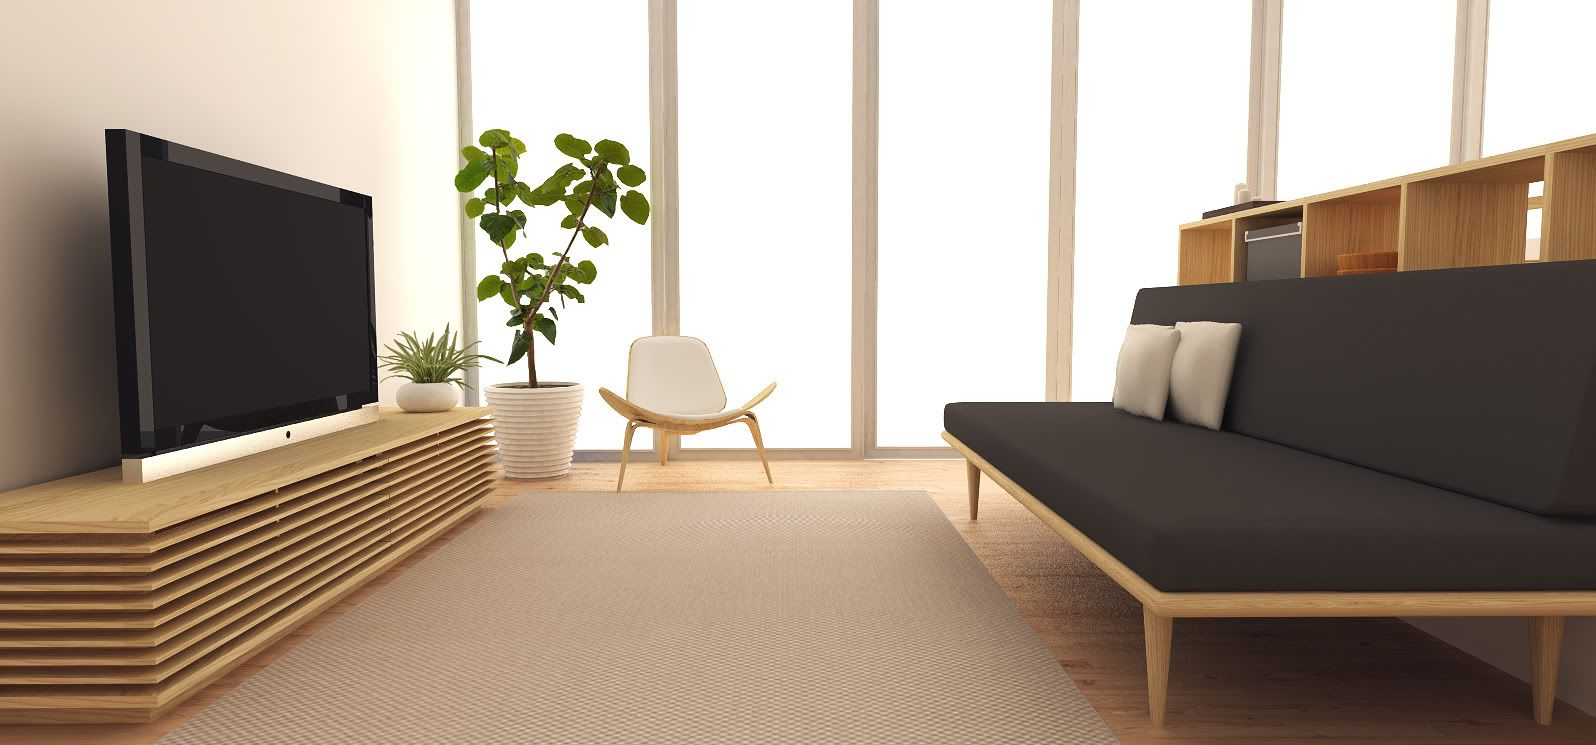 minimalist tv console simple chair durable carpet and